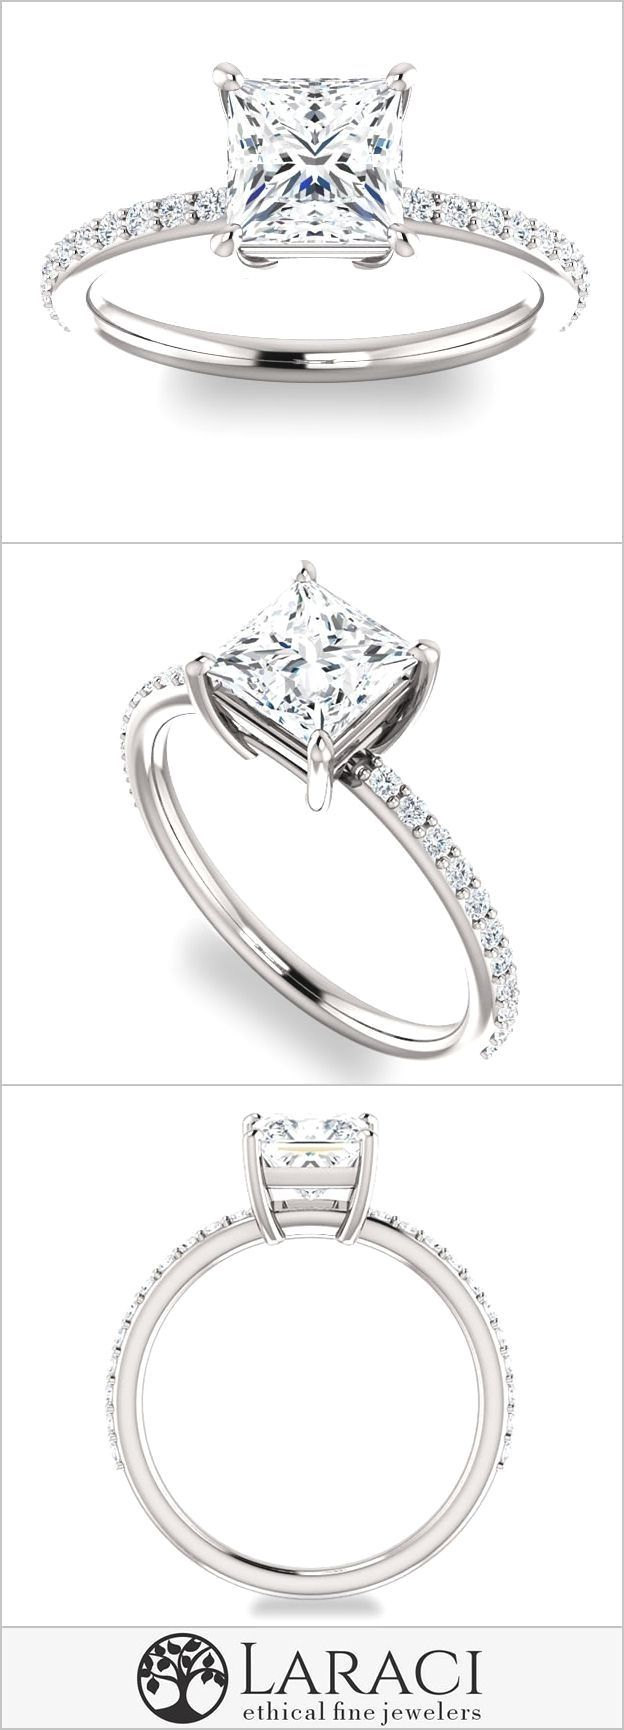 This Moissanite Solitaire Engagement Ring with Eternity Band is a top seller. This ring looks lovely on every hand no matter the size or shape and is purchased by all ages. This Engagement Ring is for sure a new classic and will adored for a lifetime. Paired with its matching wedding band this ring is sure to draw attention.